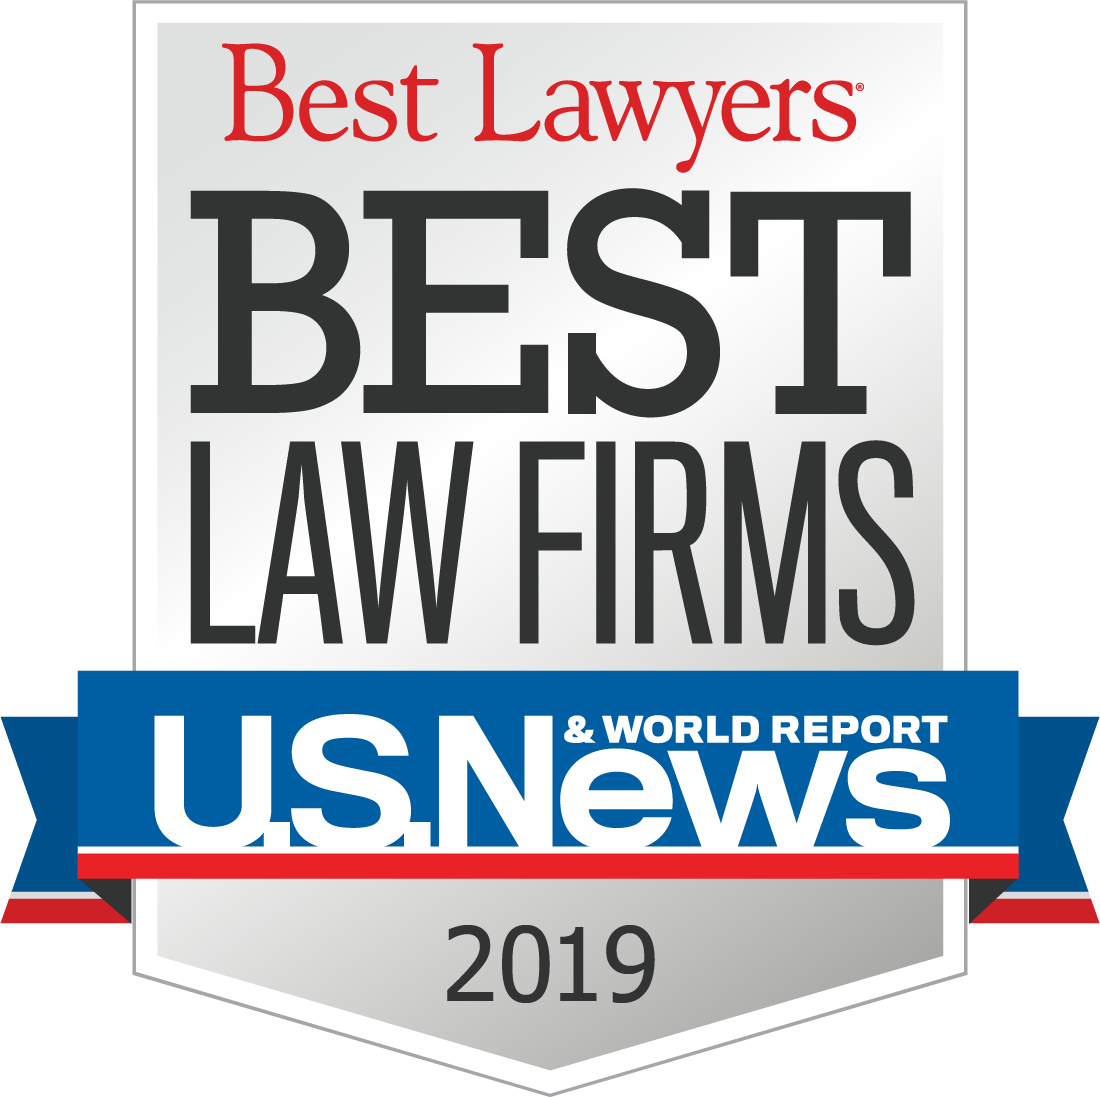 2018 best lawyers and best law firms by U.S. News and World Report badge.